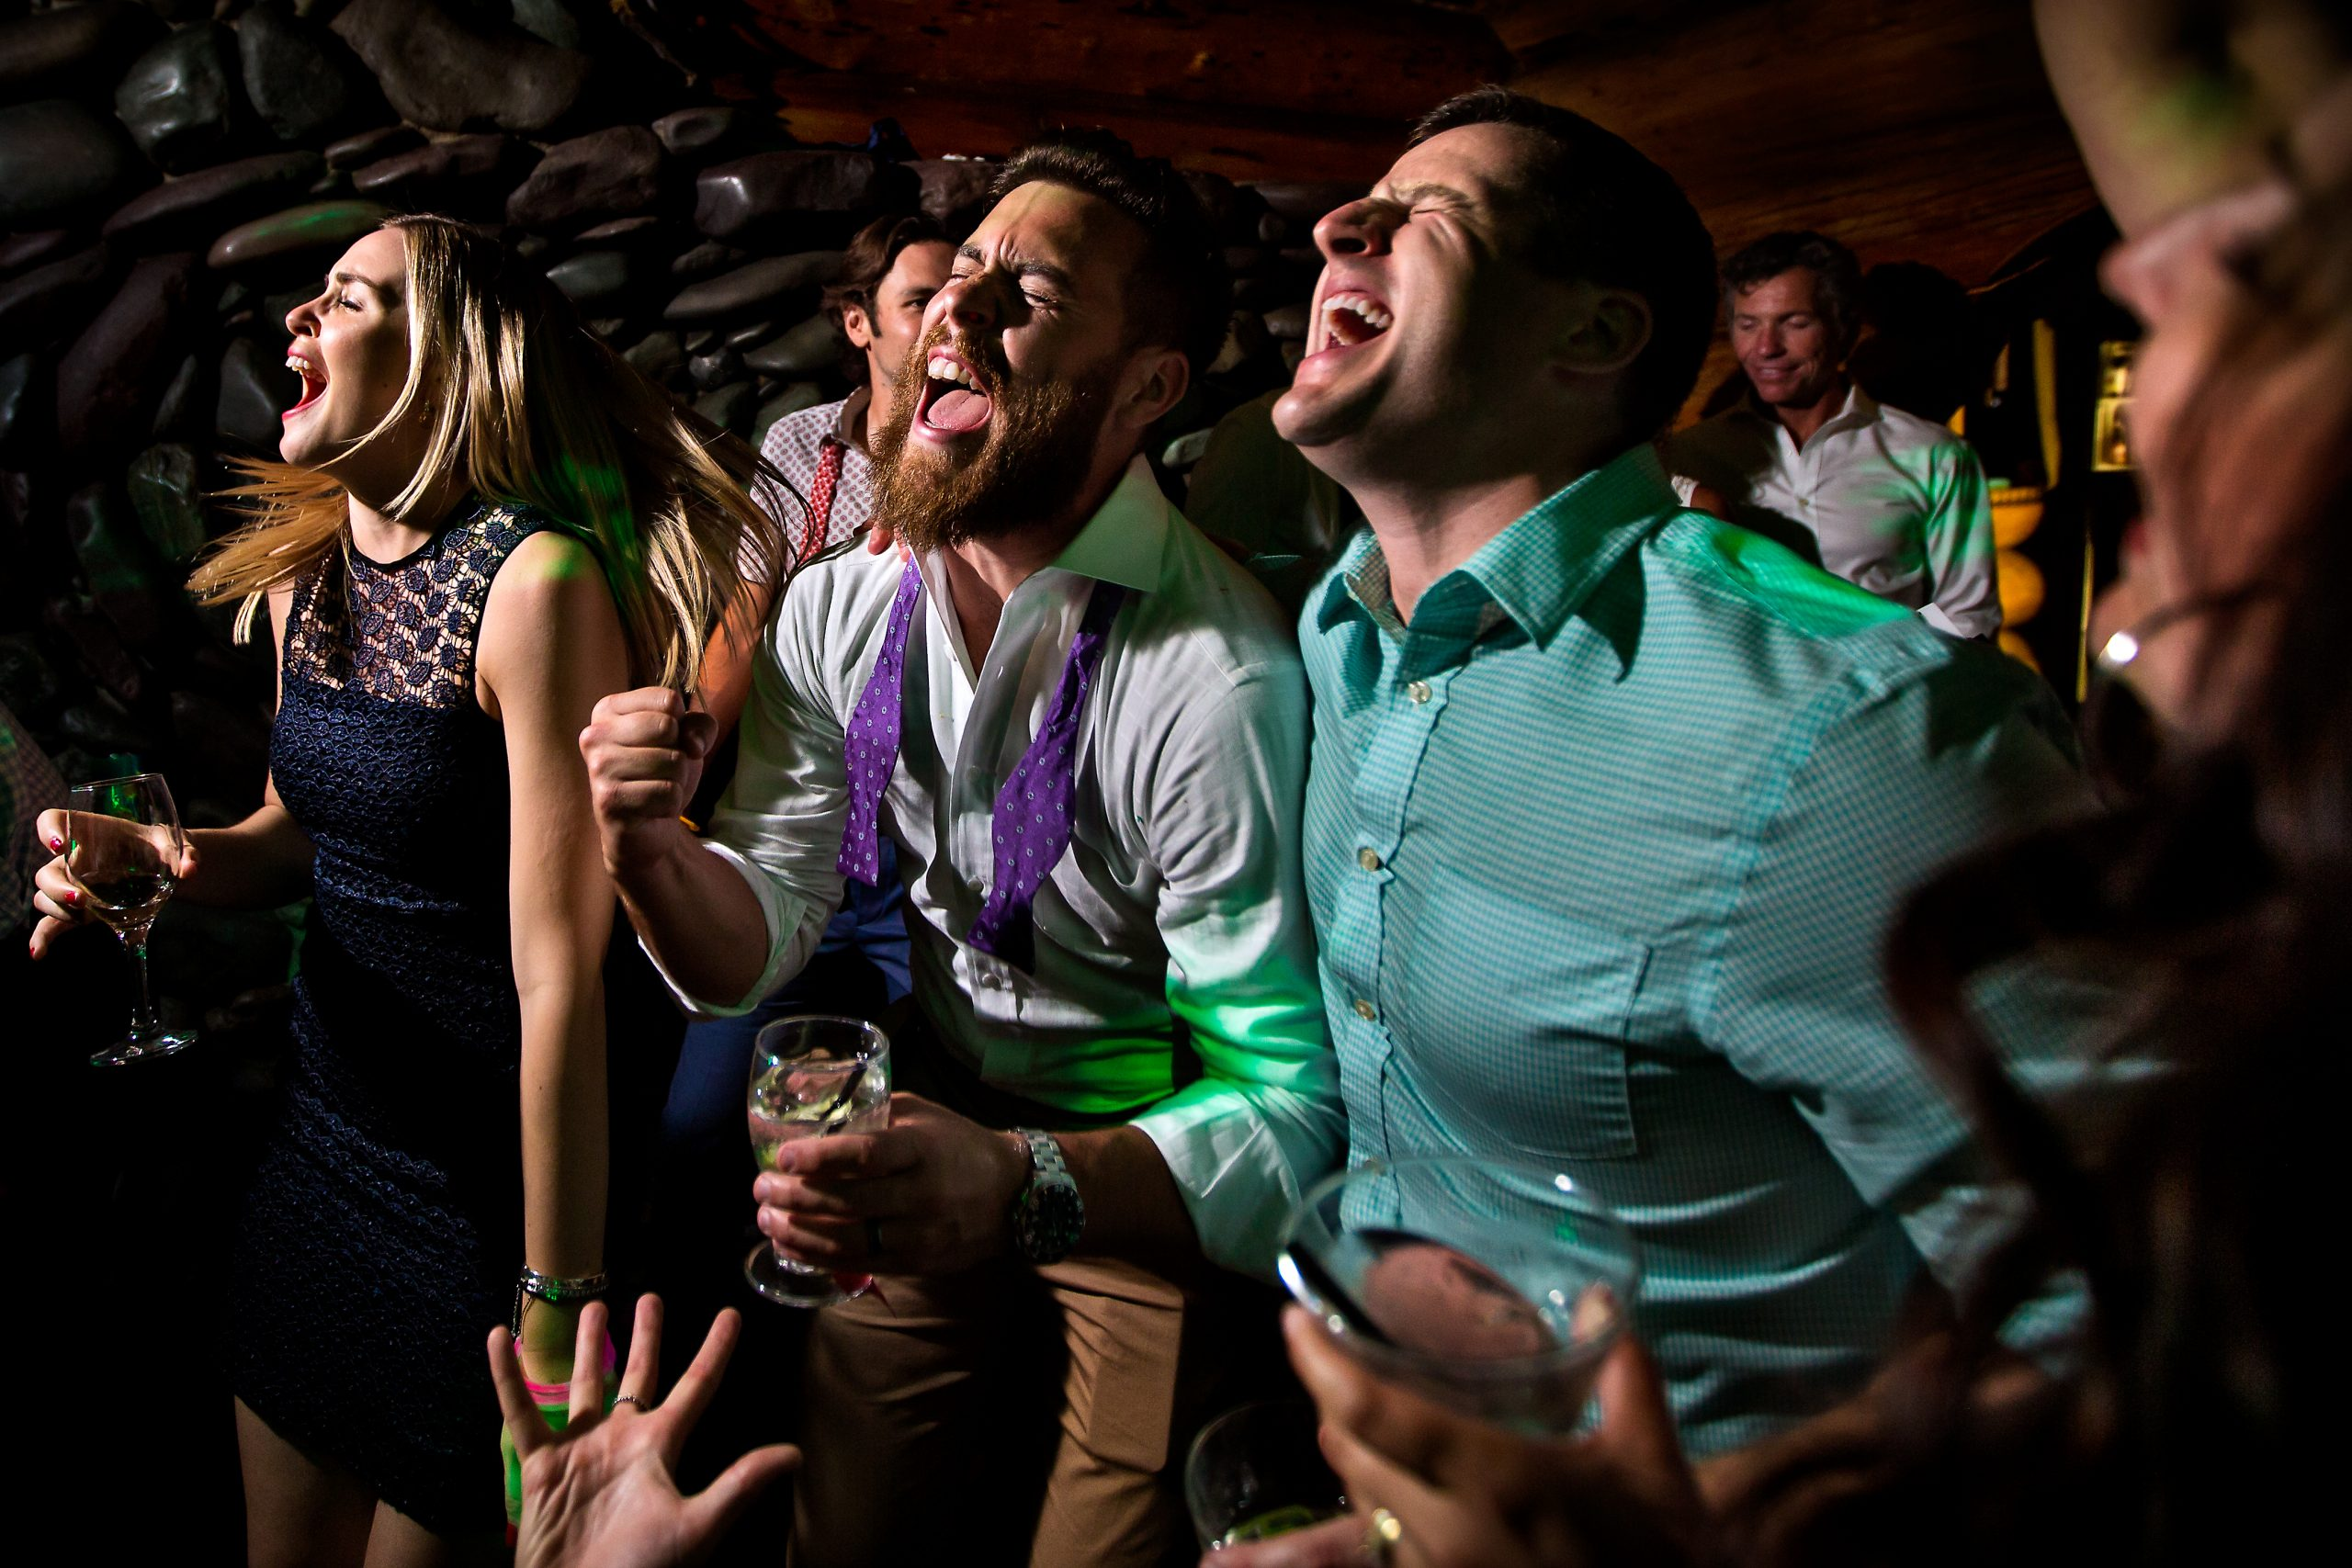 Partygoers close their eyes as they sing passionately